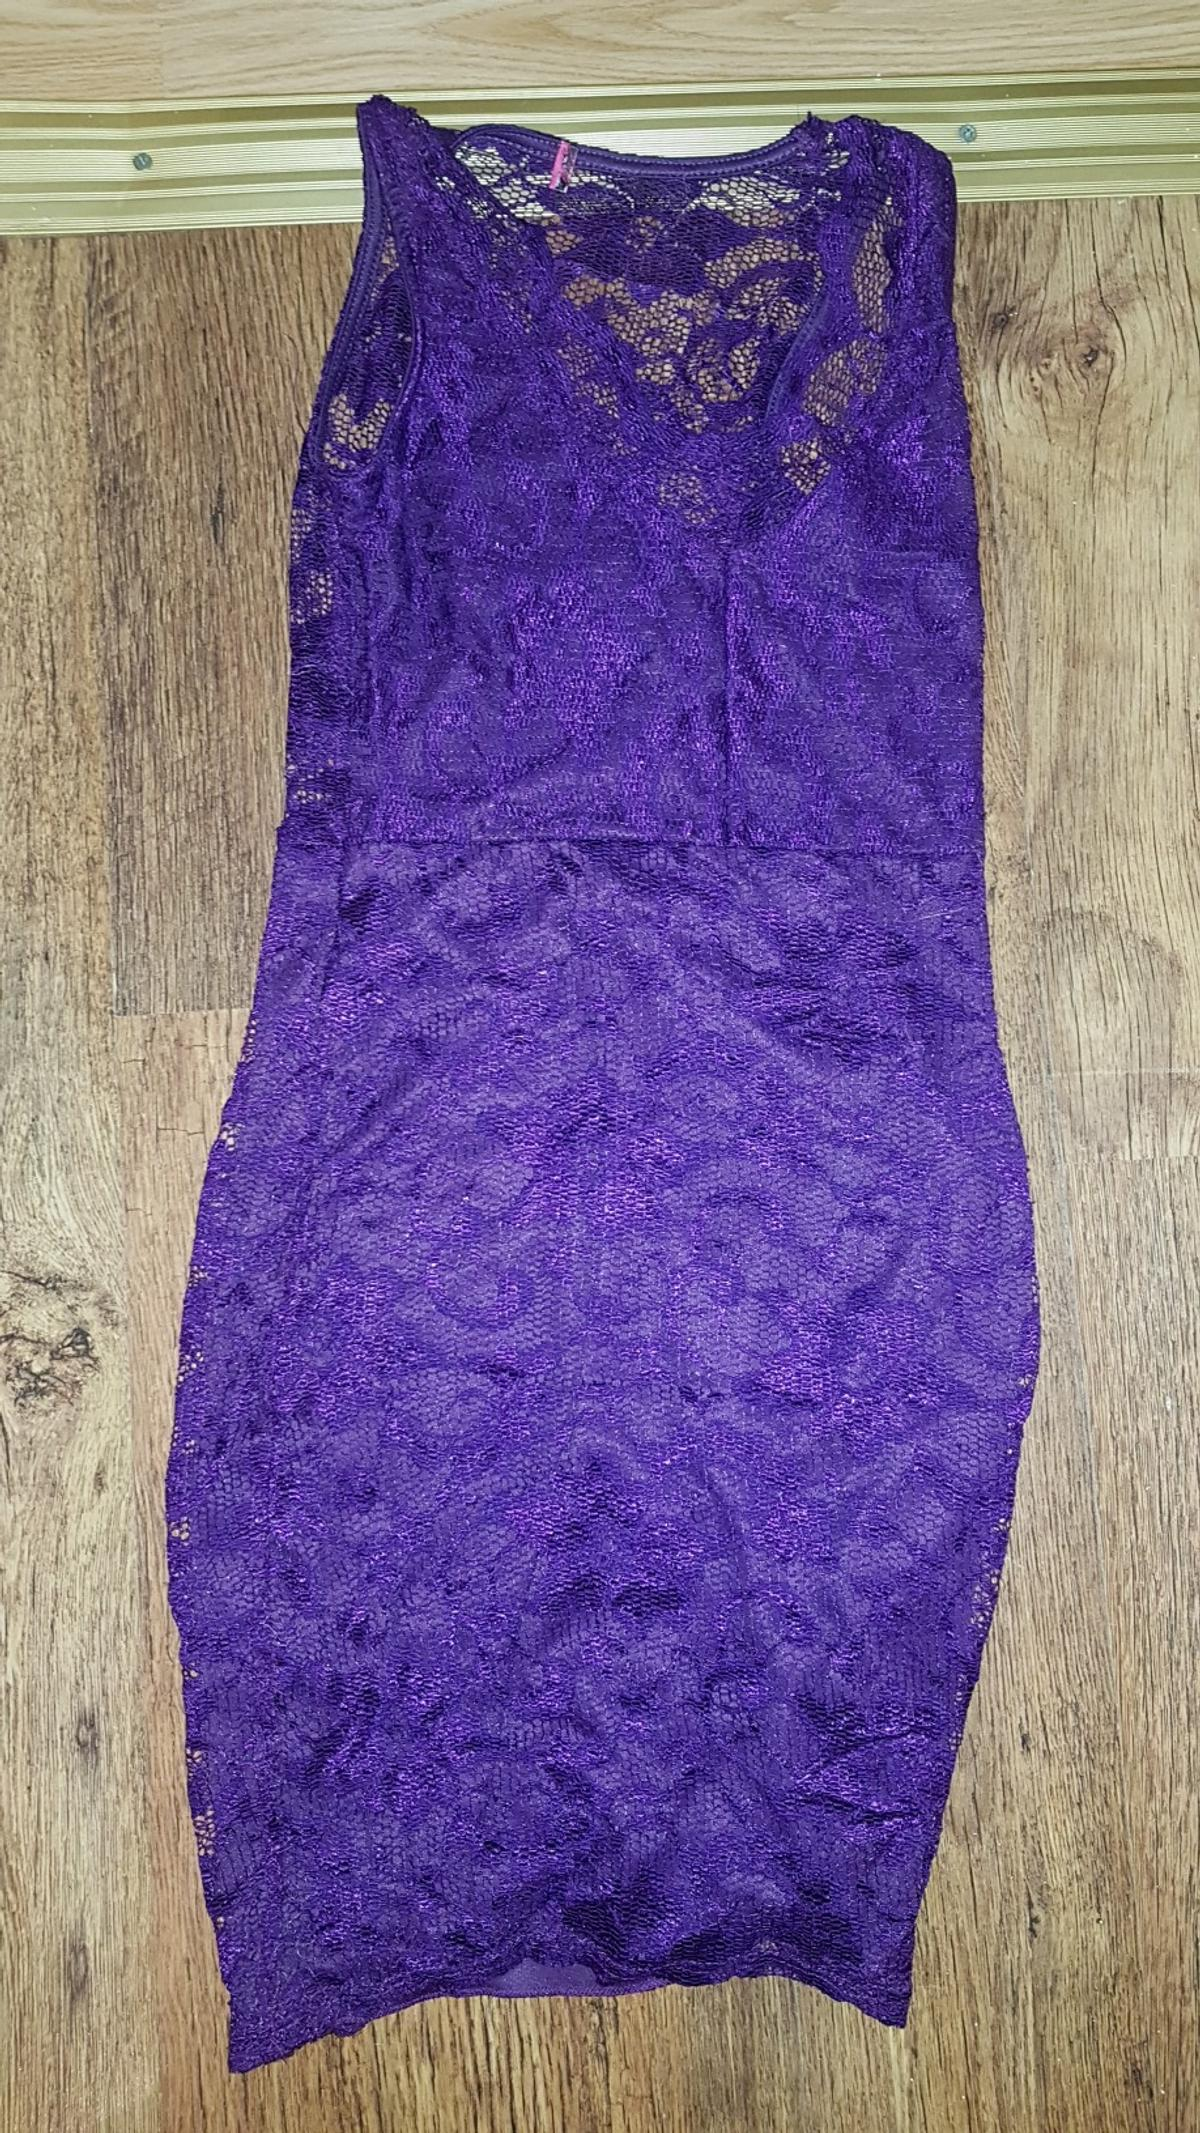 5d713866c8e94 boohoo purple vneck lace dress in E8 London for £10.00 for sale - Shpock